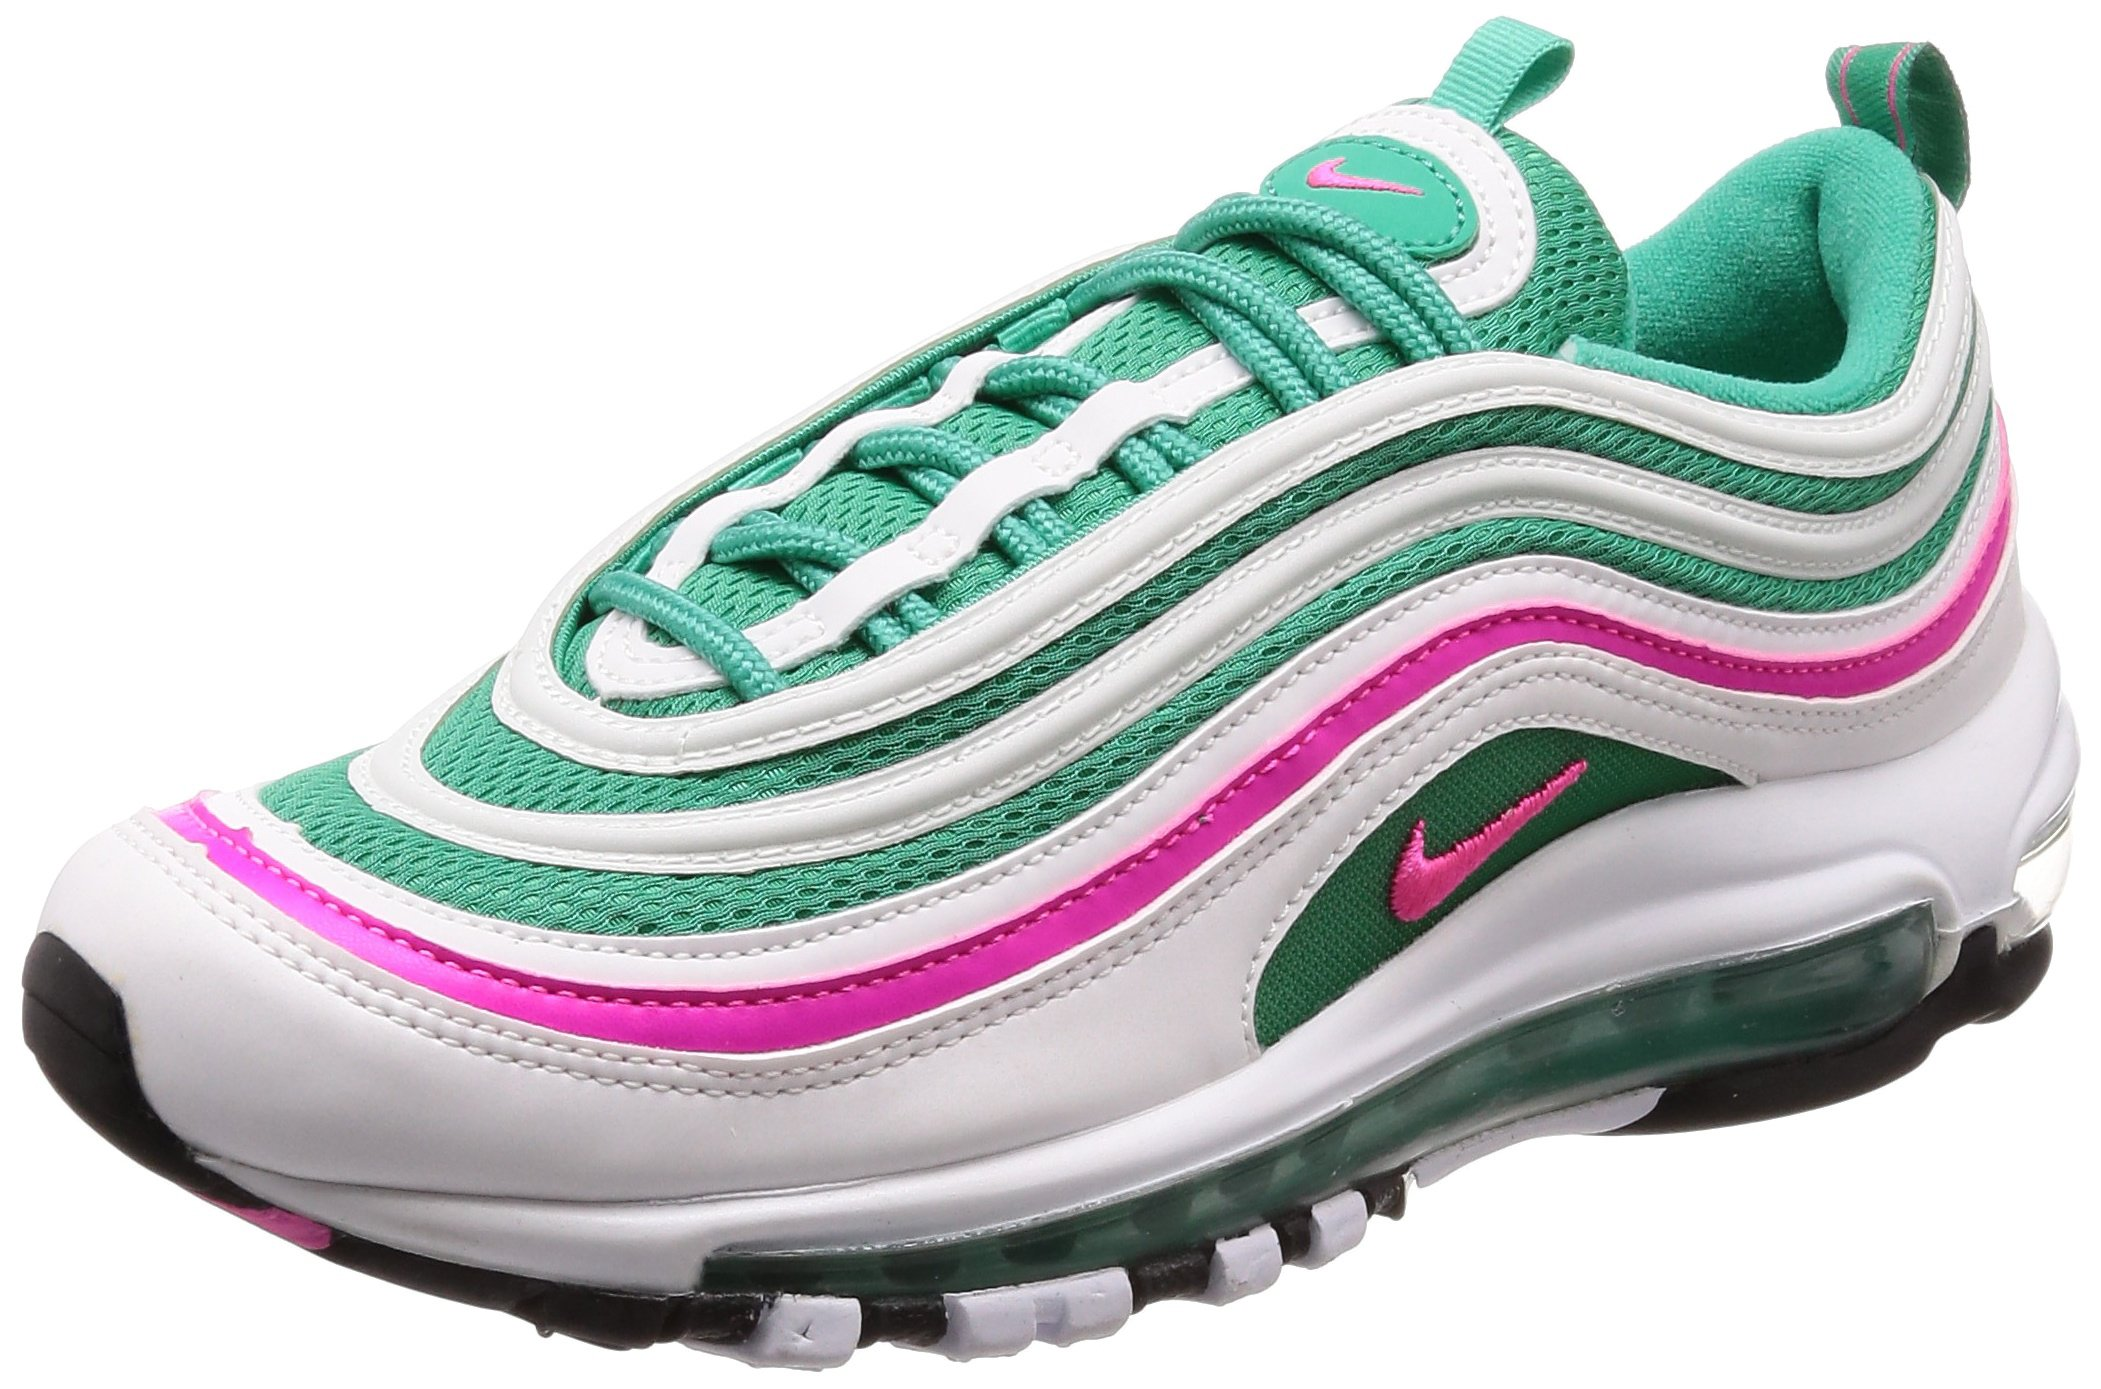 Nike Air Max 97 Kinetic Blast in 2019 | Cheap nike air max